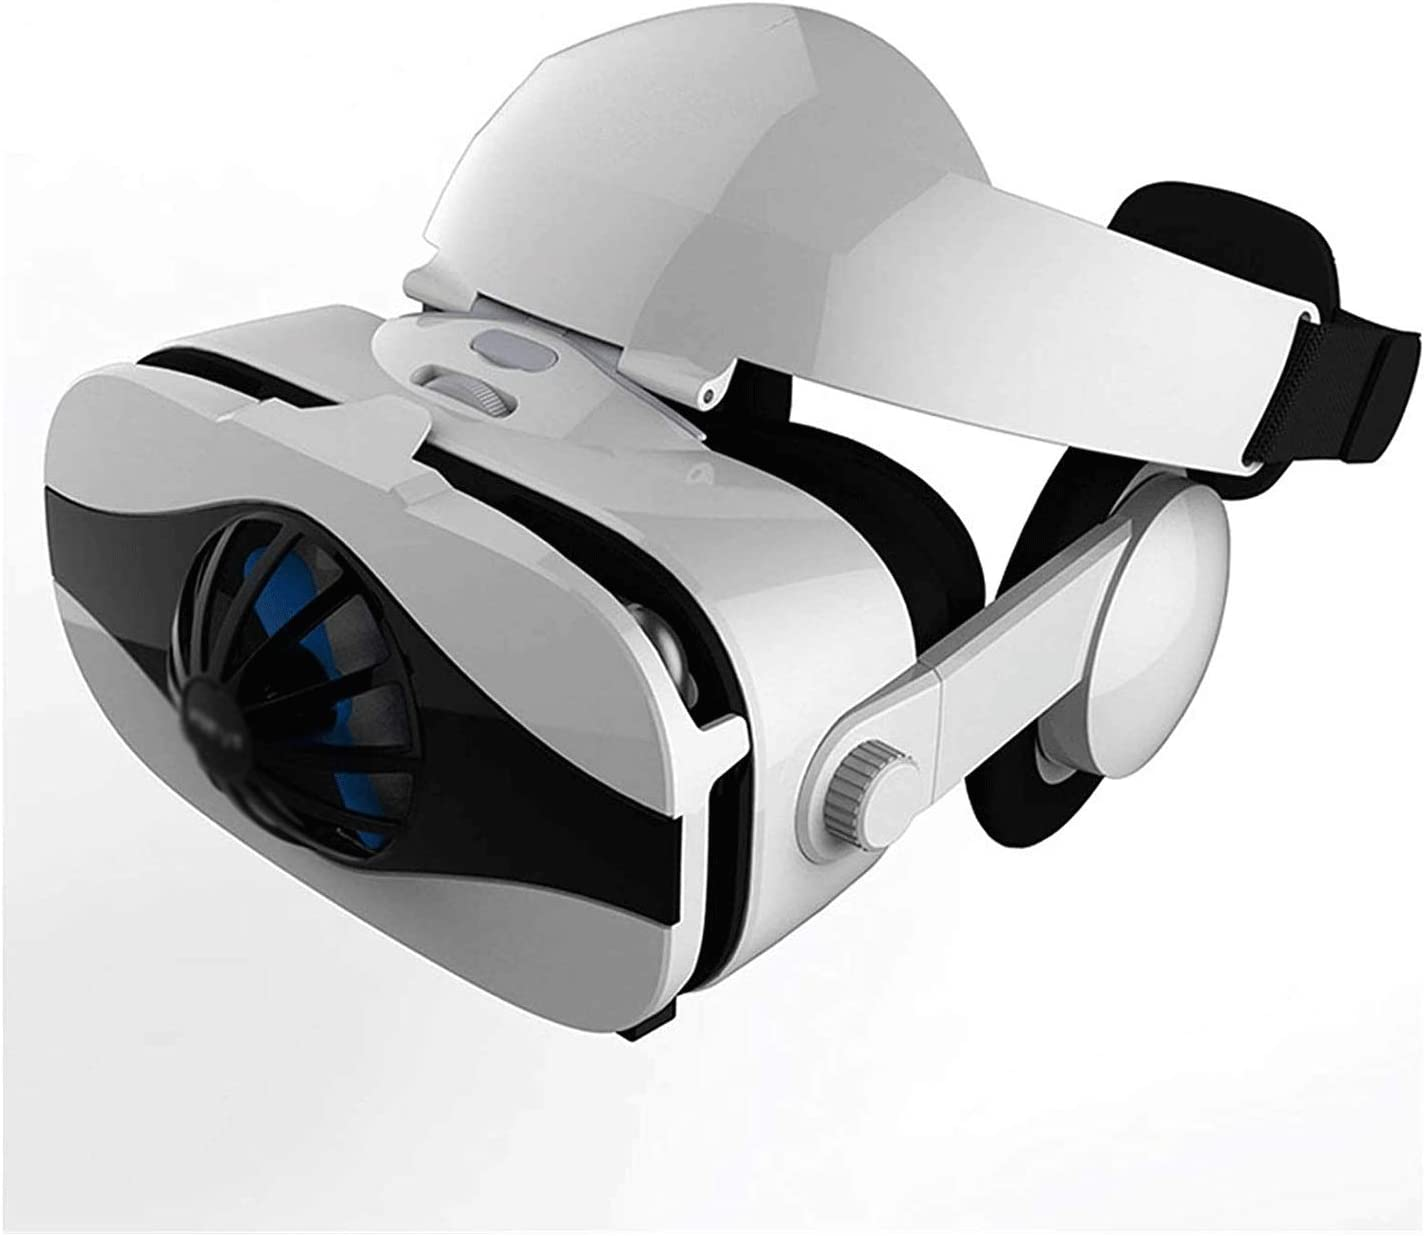 Bdesign Smart VR Headset for iOS and Android Phones - Virtual Reality Goggles   Comfortable & Adjustable VR Glasse   Play Your Best Mobile 3D Games 360 Movies